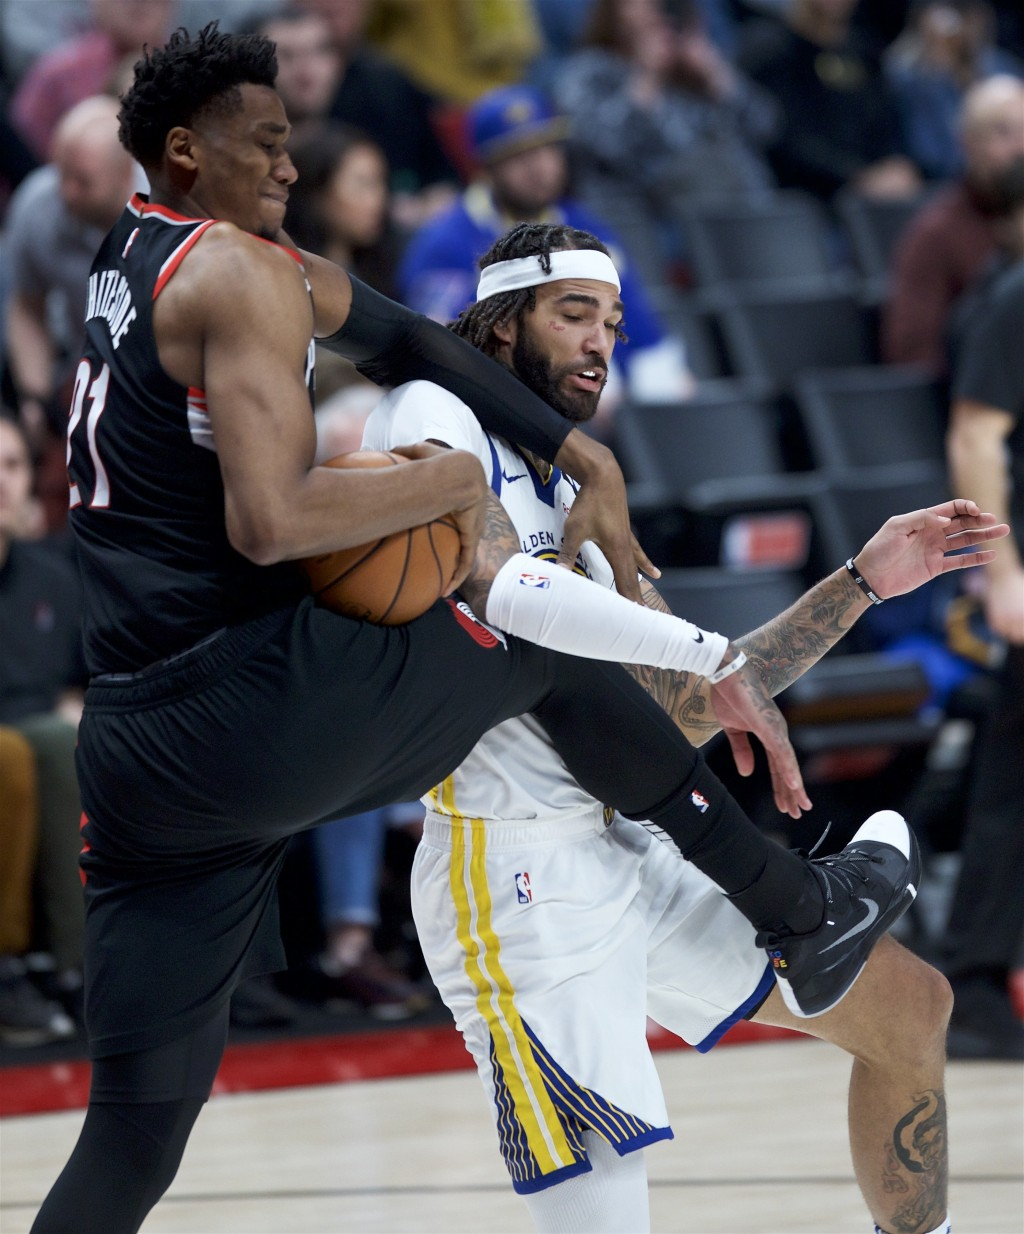 Portland Trail Blazers center Hassan Whiteside, left, and Golden State Warriors center Willie Cauley-Stein vie for the ball during the second half of ...